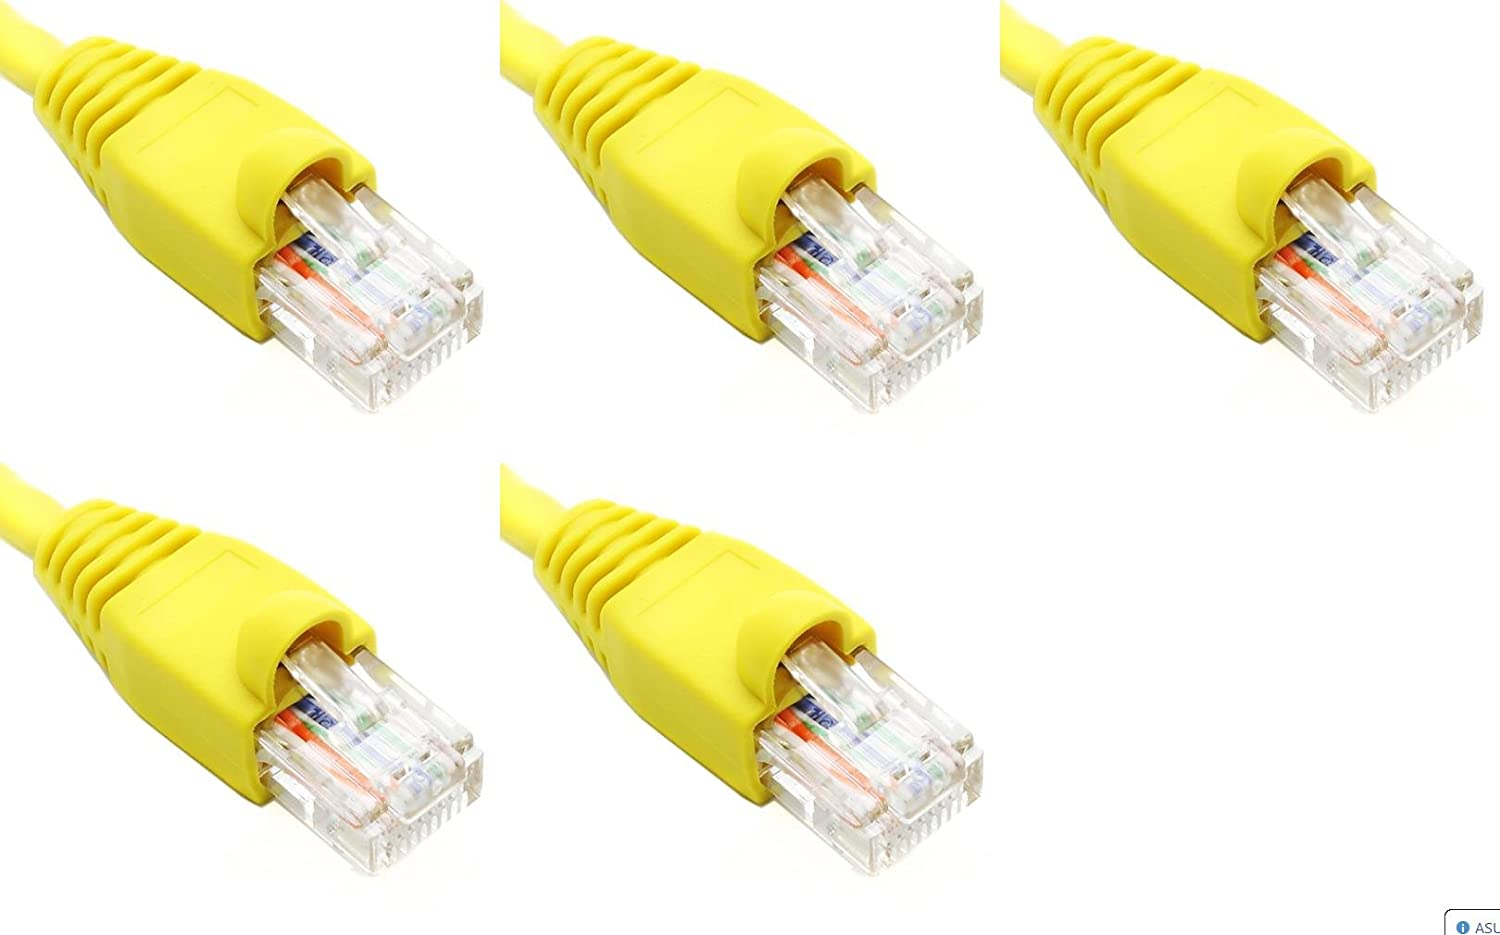 Yellow 2FT Cat6 Ethernet Network Cable LAN Internet Patch Cord RJ45 Gigabit Ultra Spec Cables Pack of 5